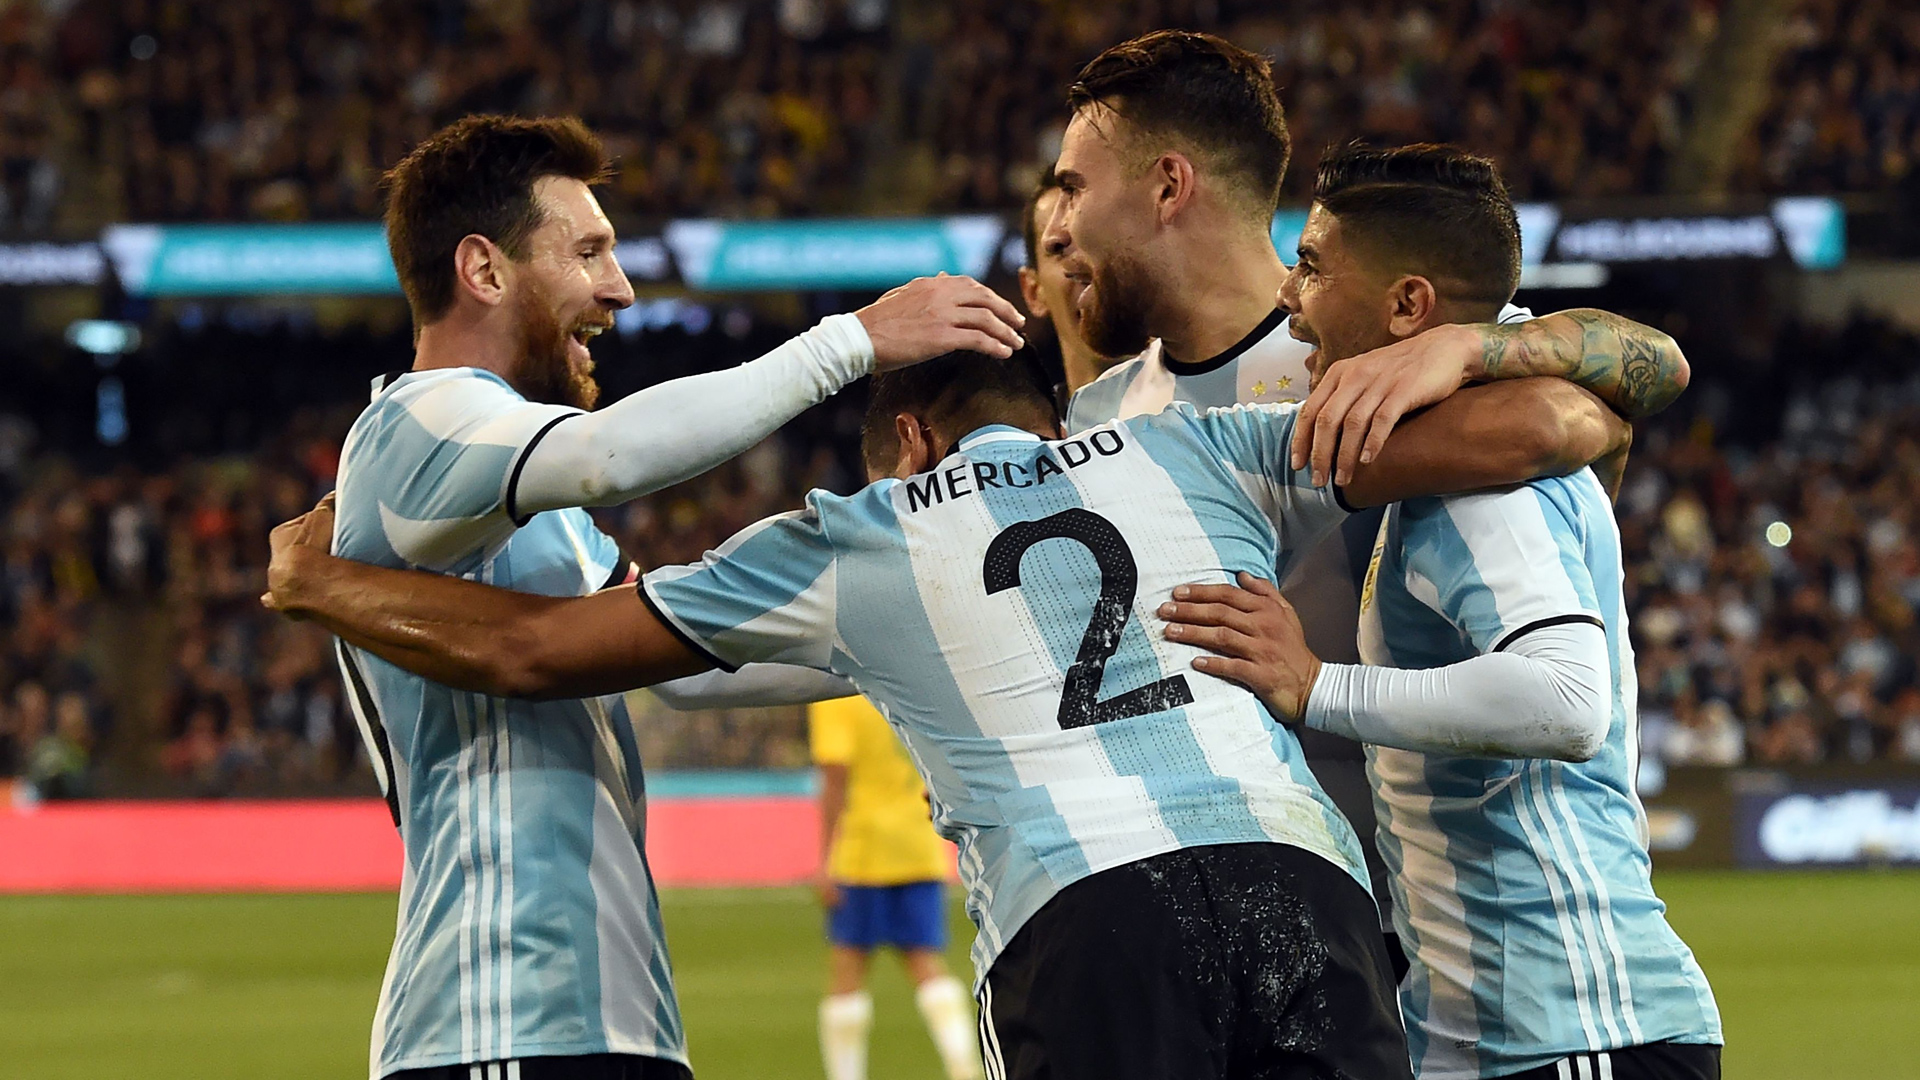 Mercado, Messi, Argentina - Brasil, Friendlies, 09062017